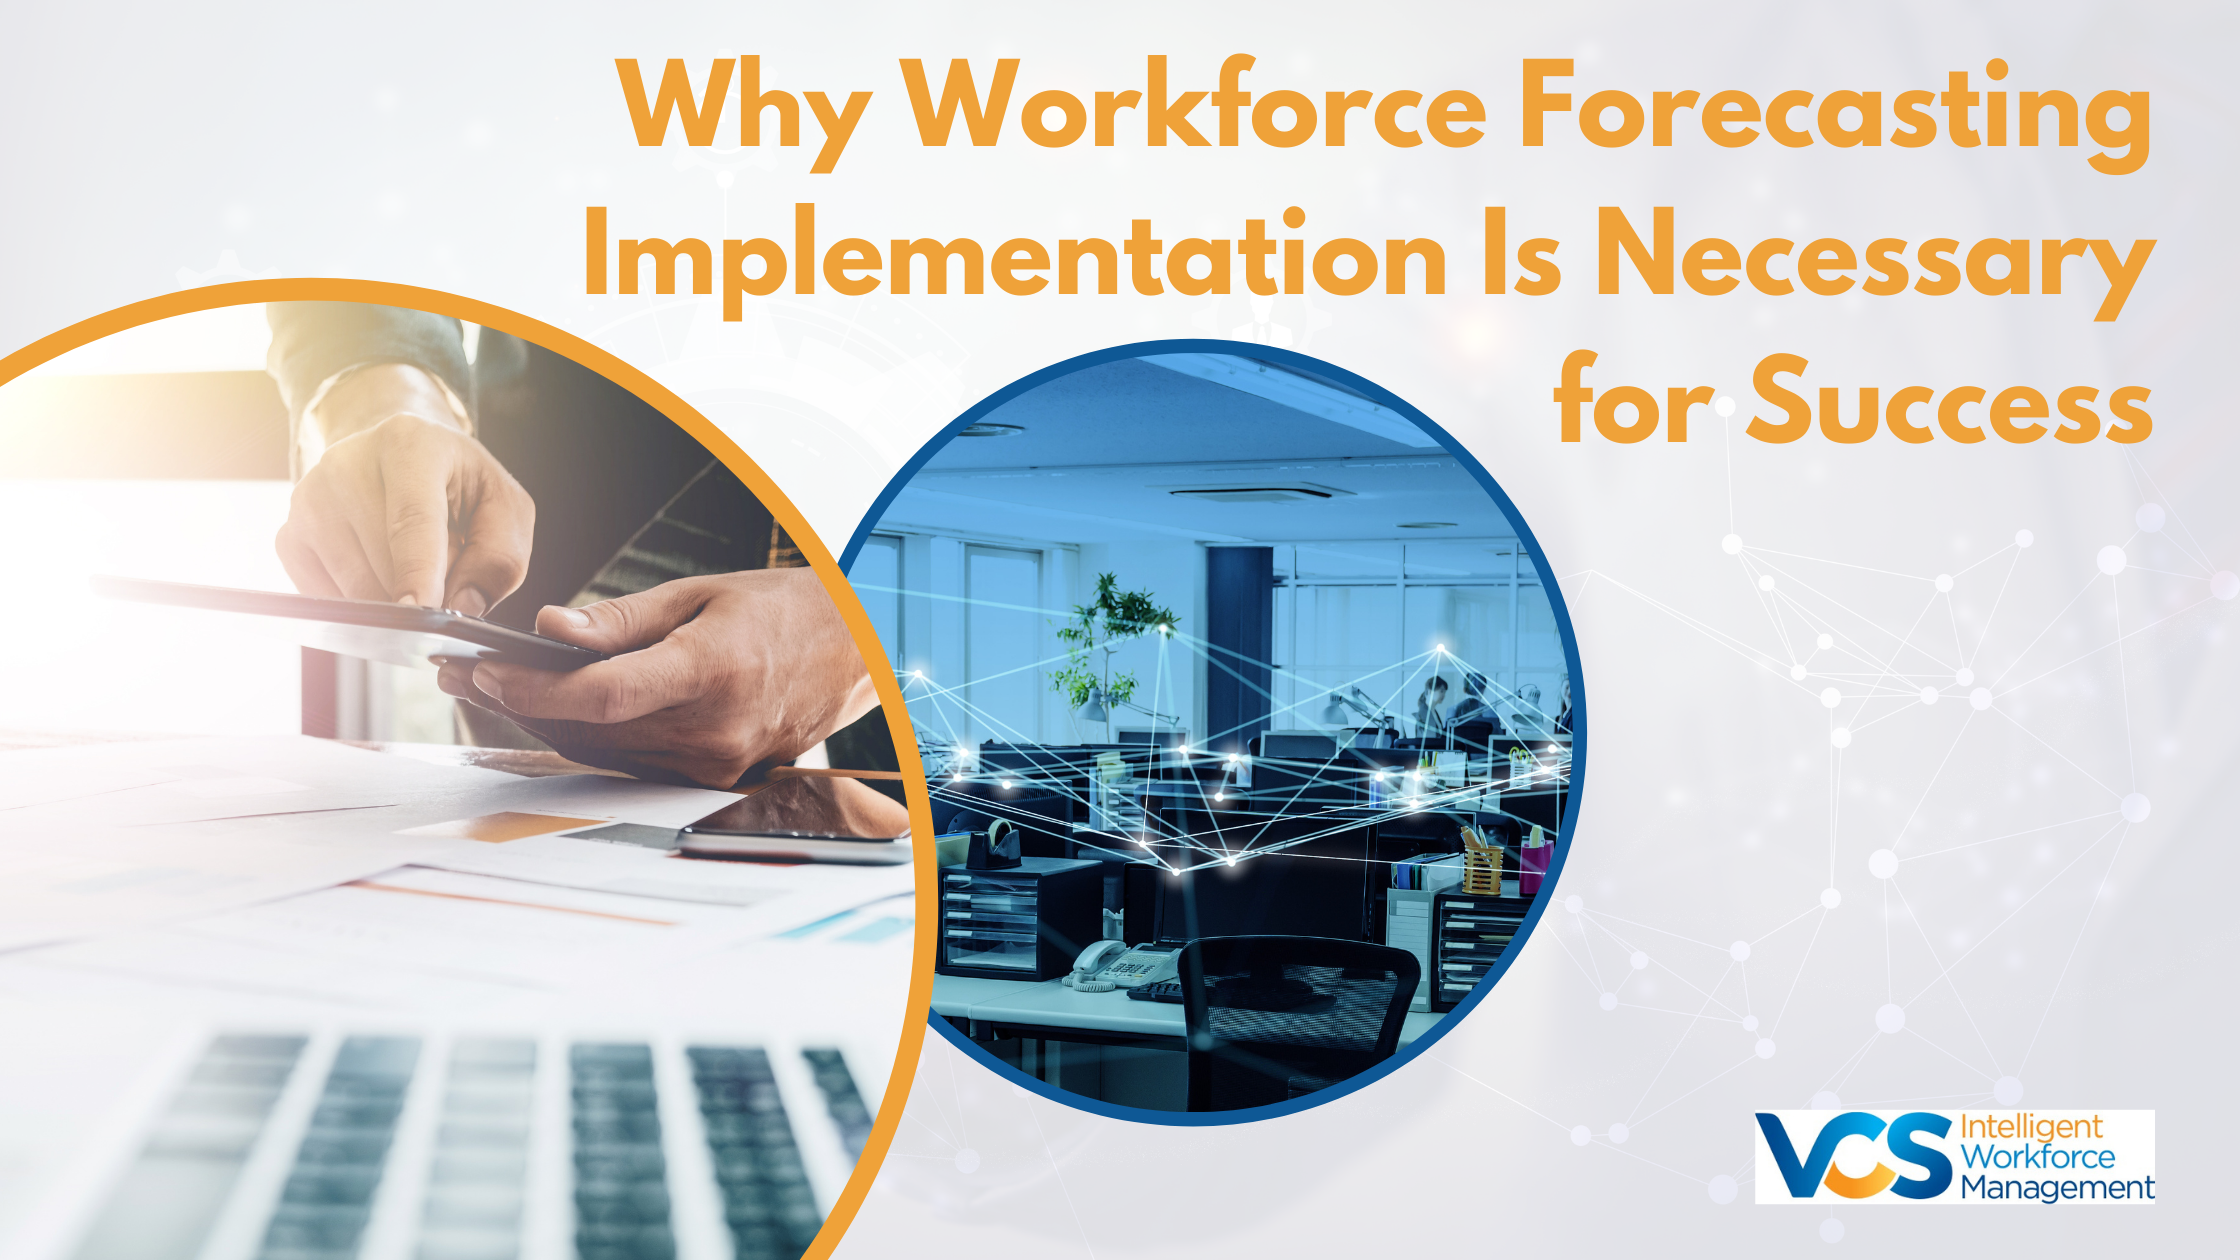 Why Workforce Forecasting Implementation Is Necessary for Success